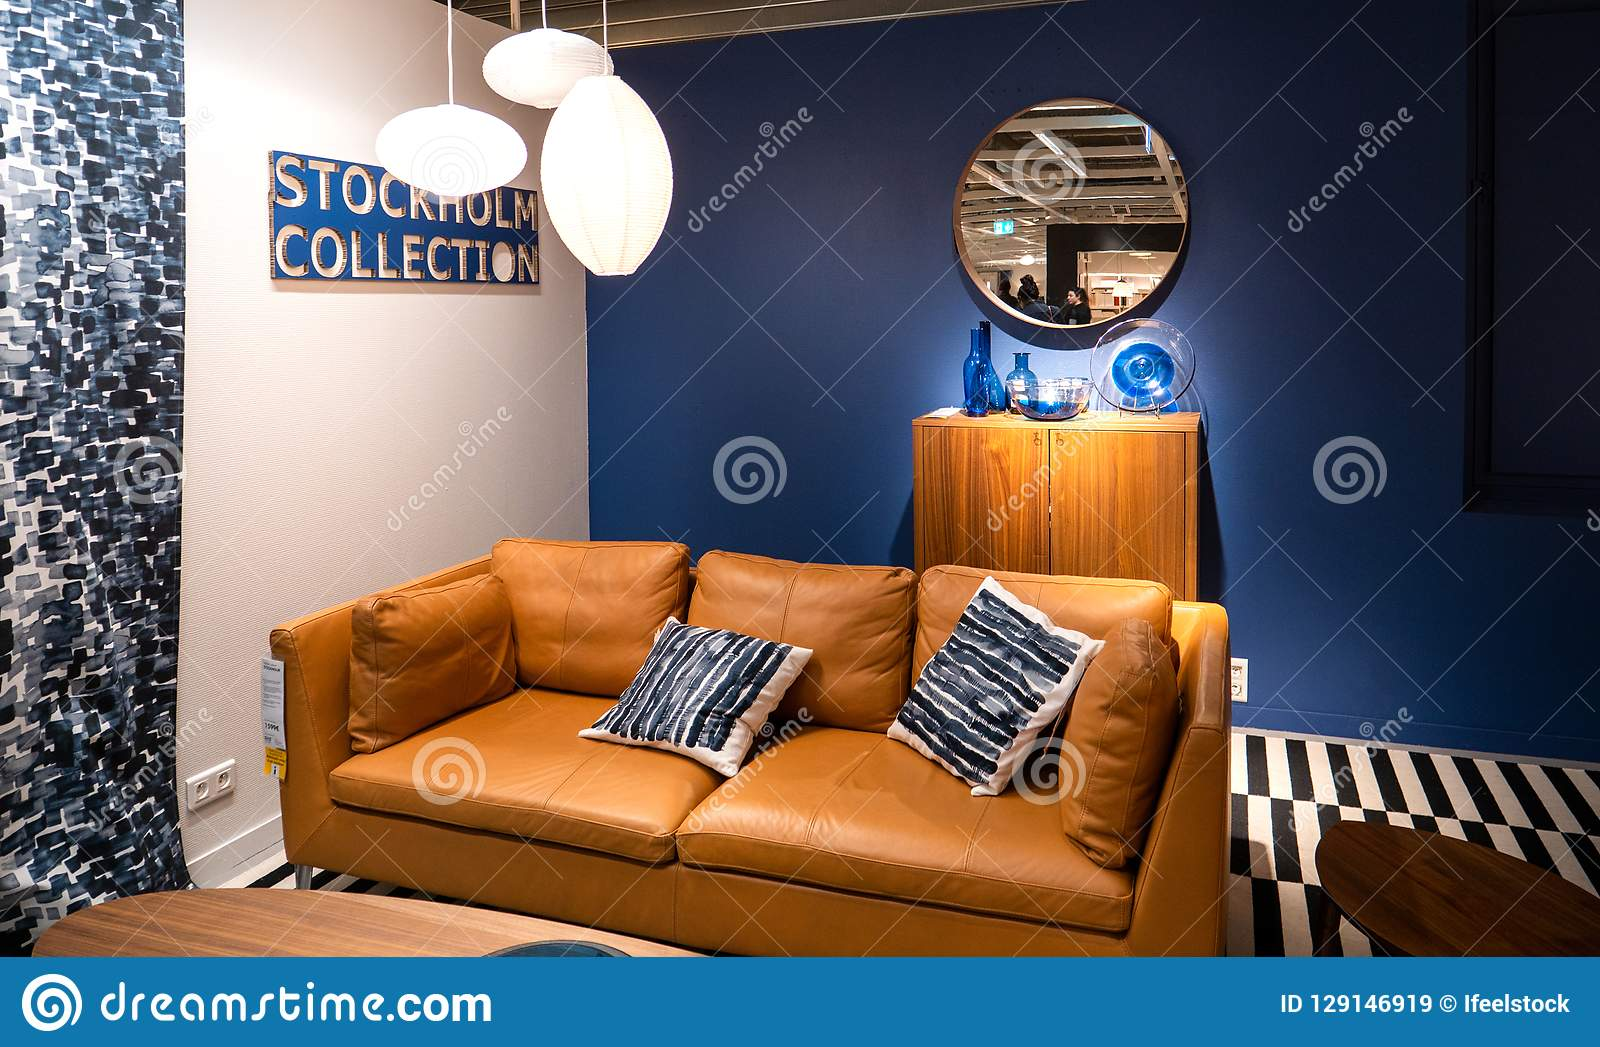 Picture of: Furniture Store With Leather Sofa Editorial Stock Image Image Of Window Chair 129146919